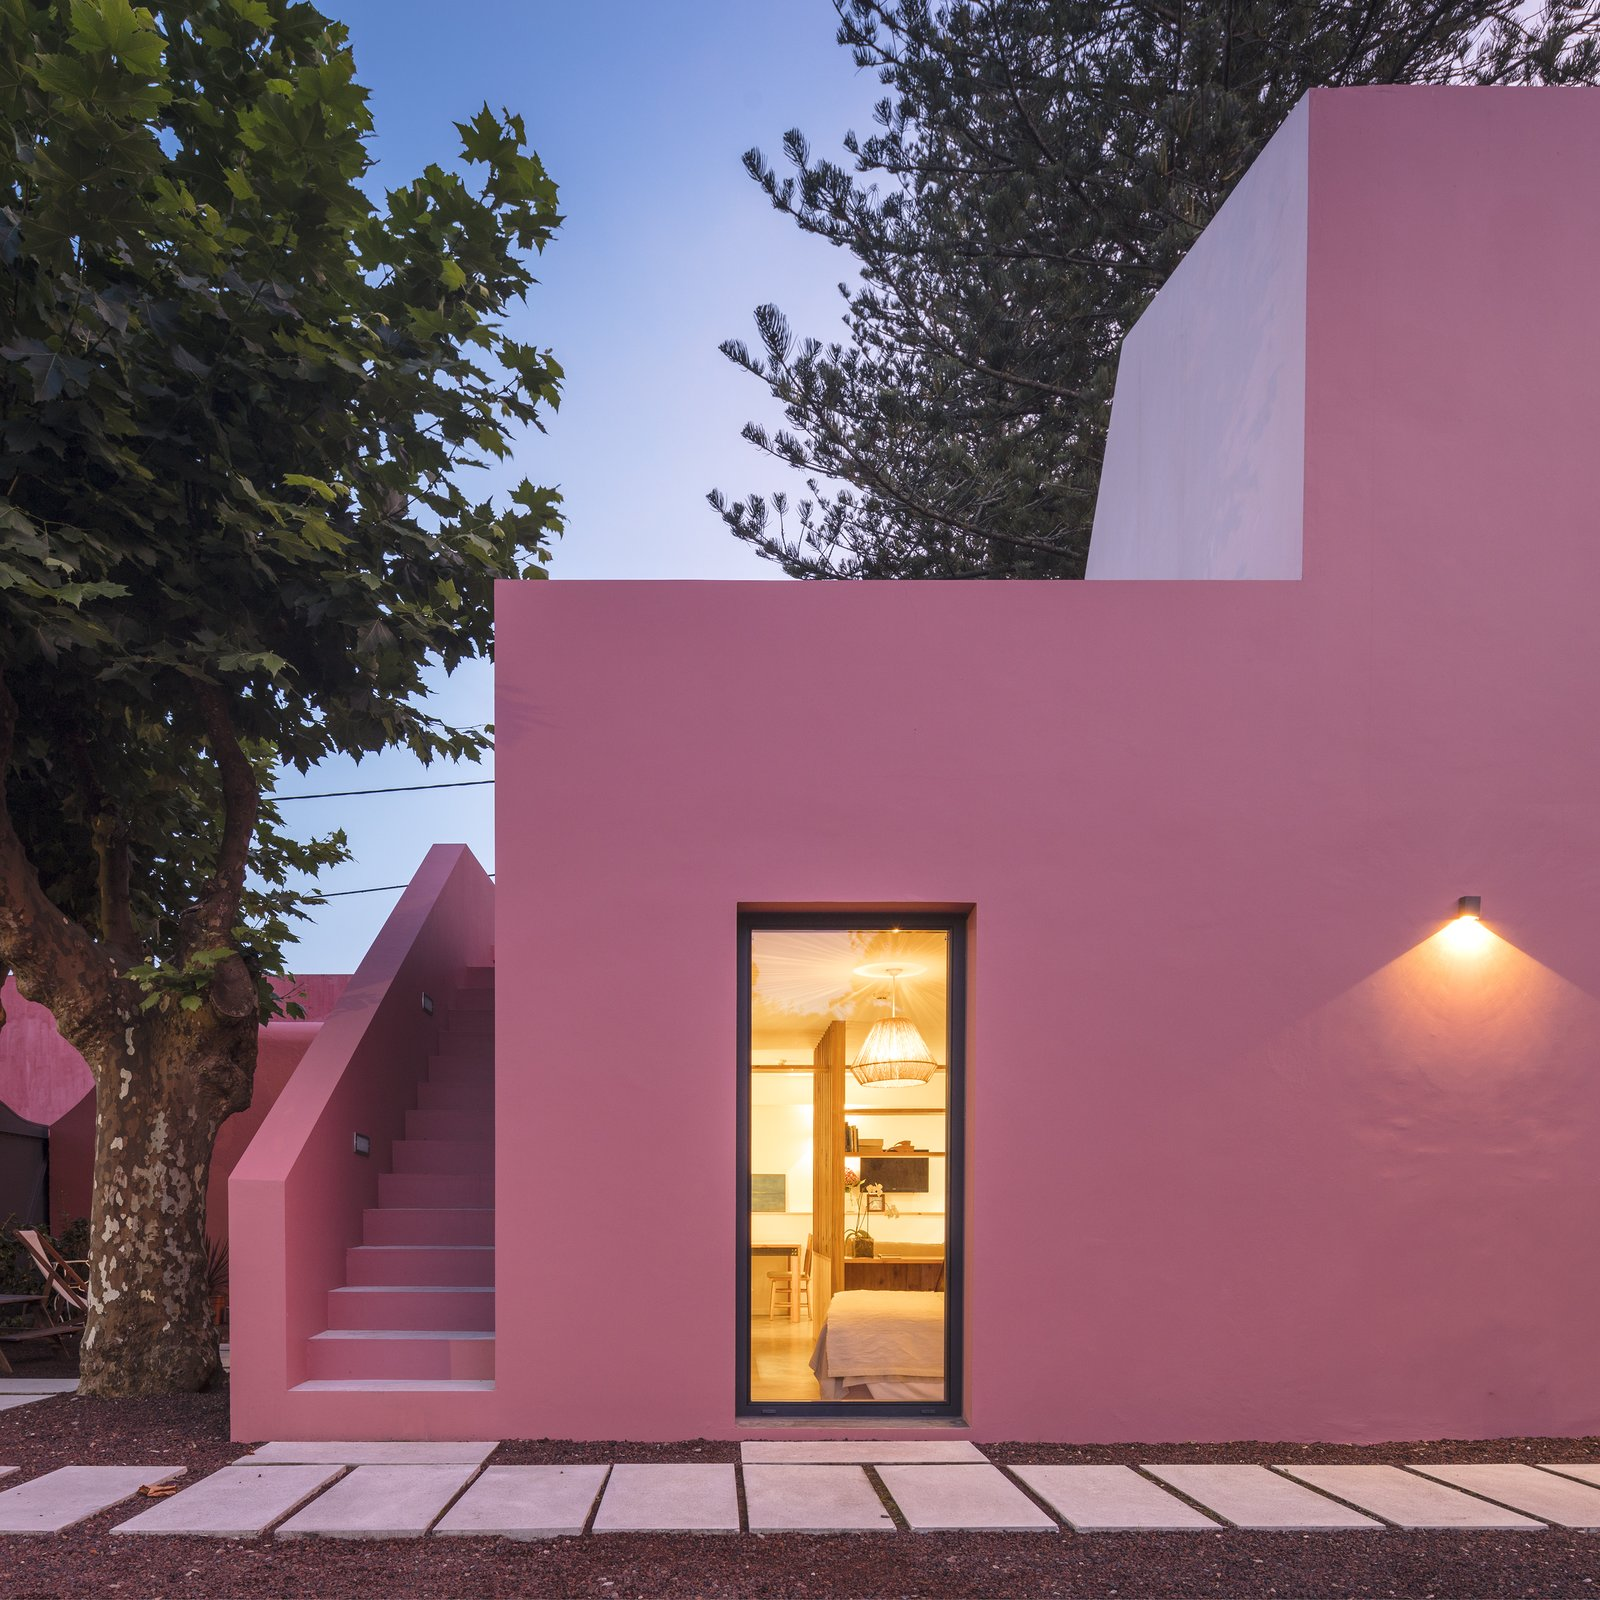 Exterior and Stucco Siding Material  Pink House